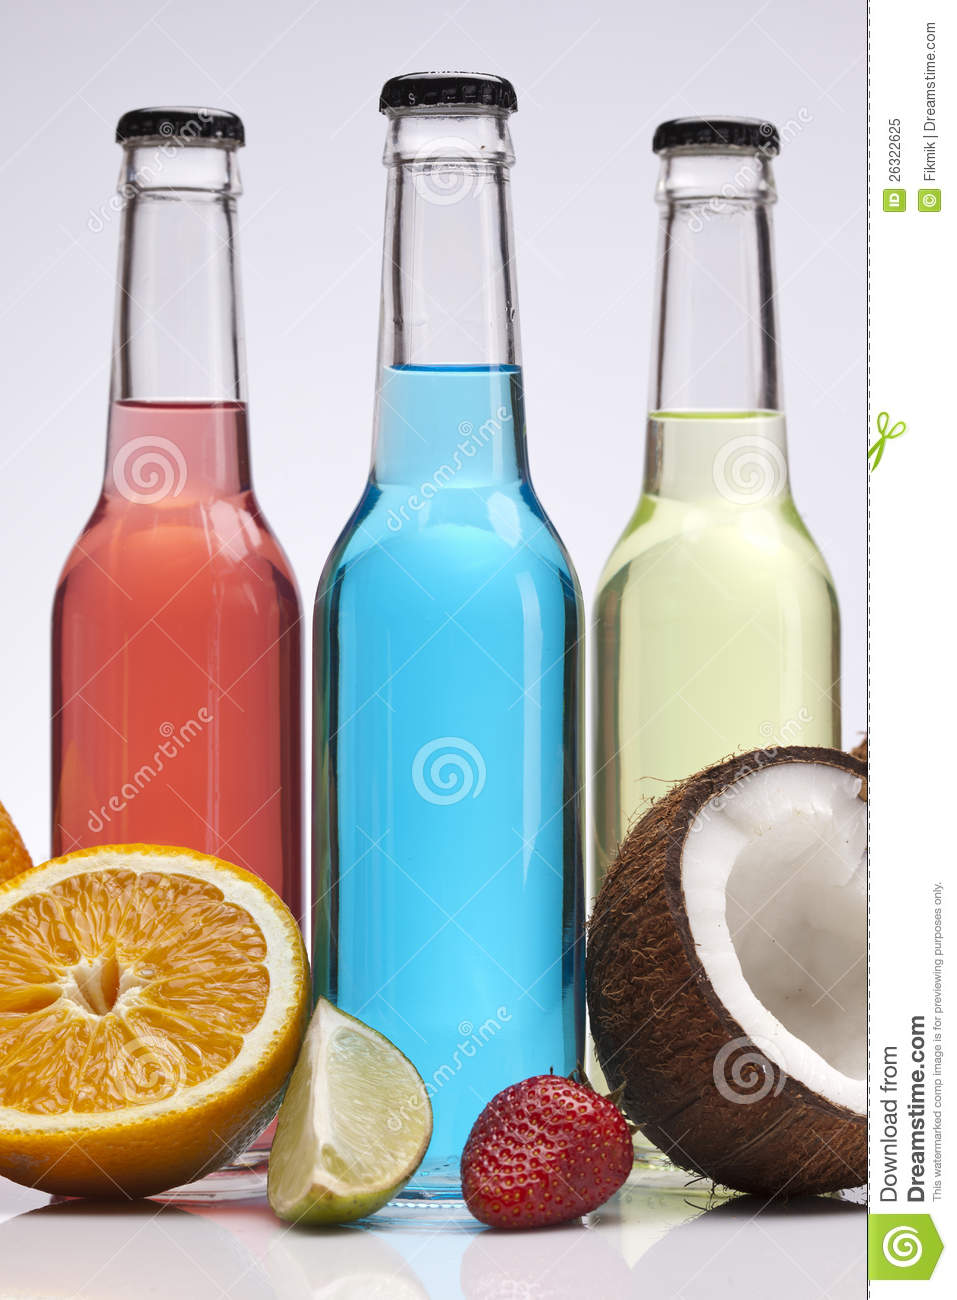 Exotic Bottle Alcohol Cocktail Royalty Free Stock Photo ...